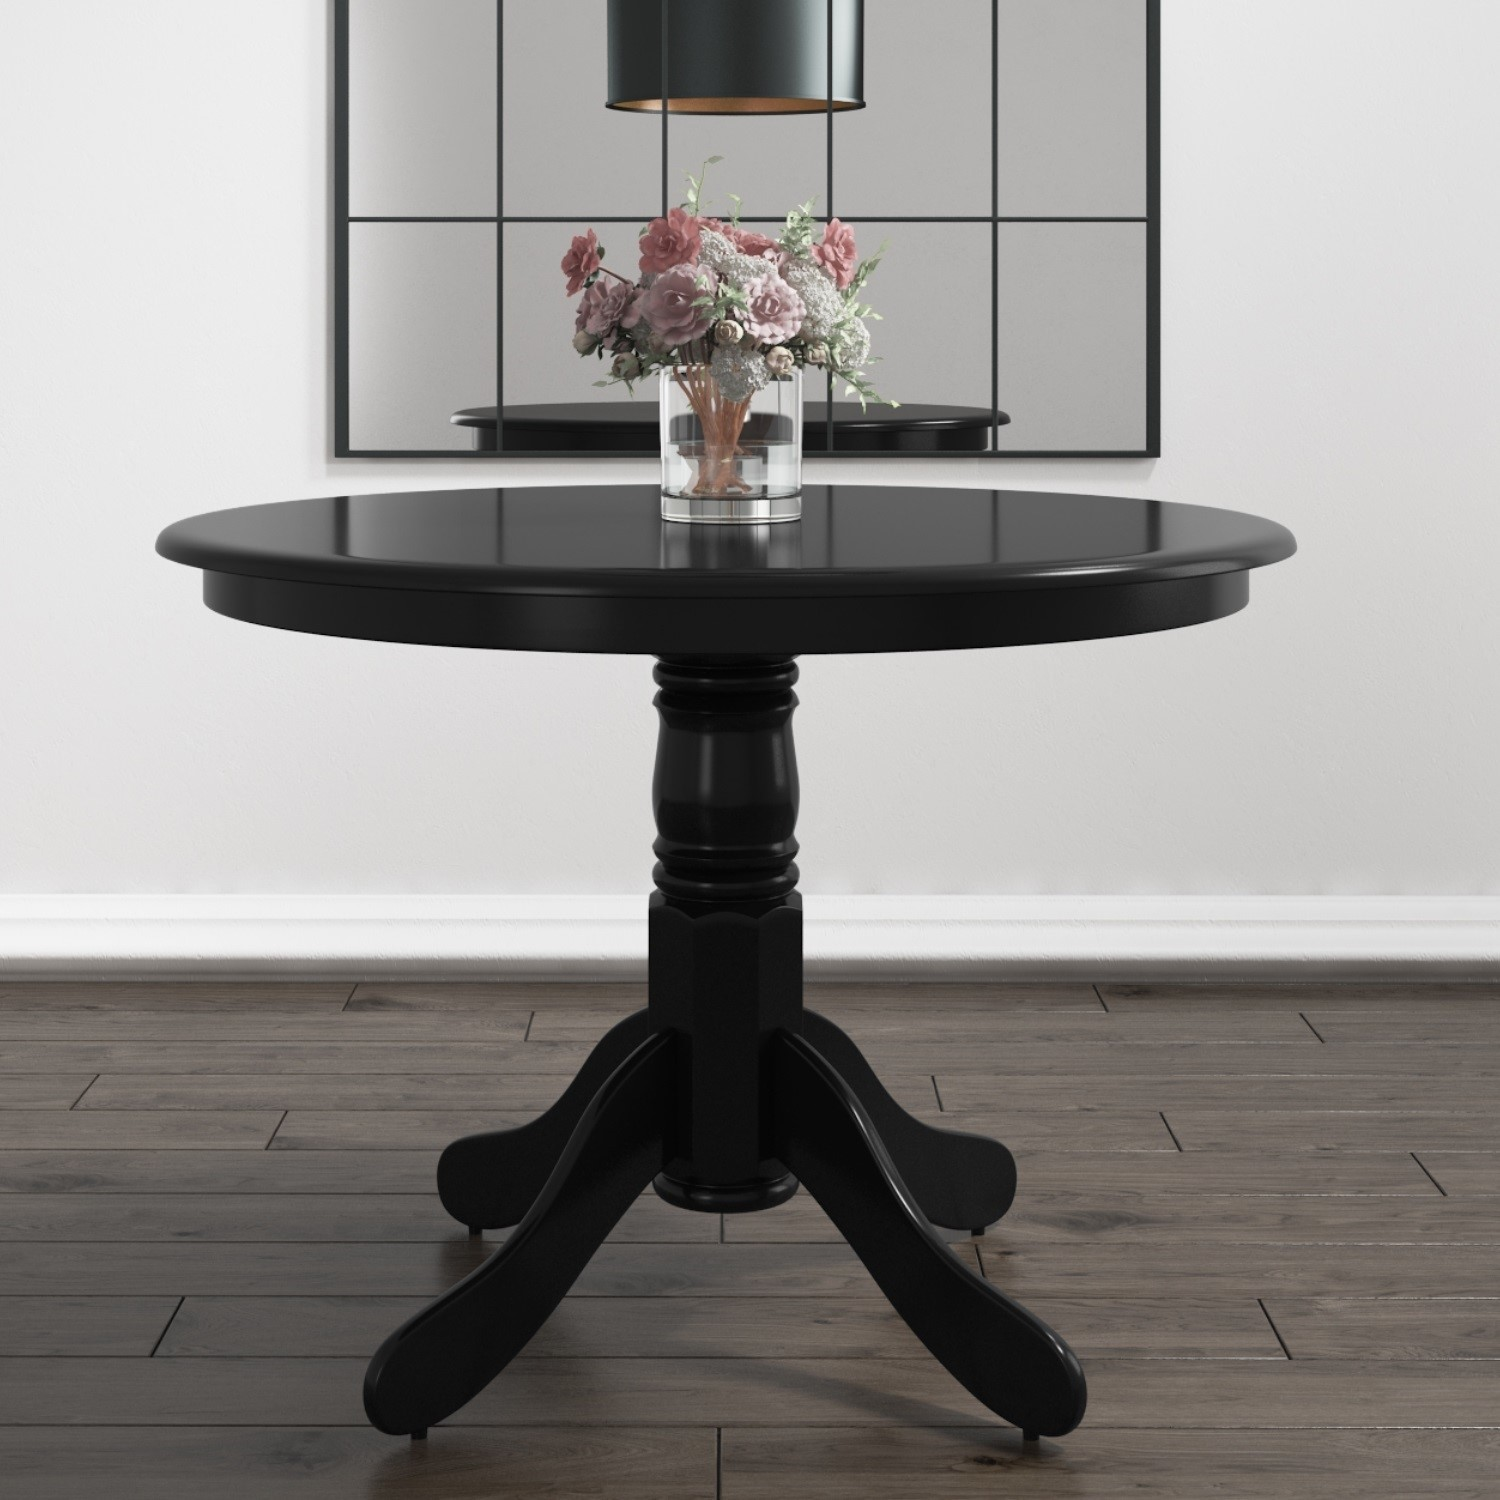 Small Round Dining Table In Black Seats 4 Rhode Island Furniture123